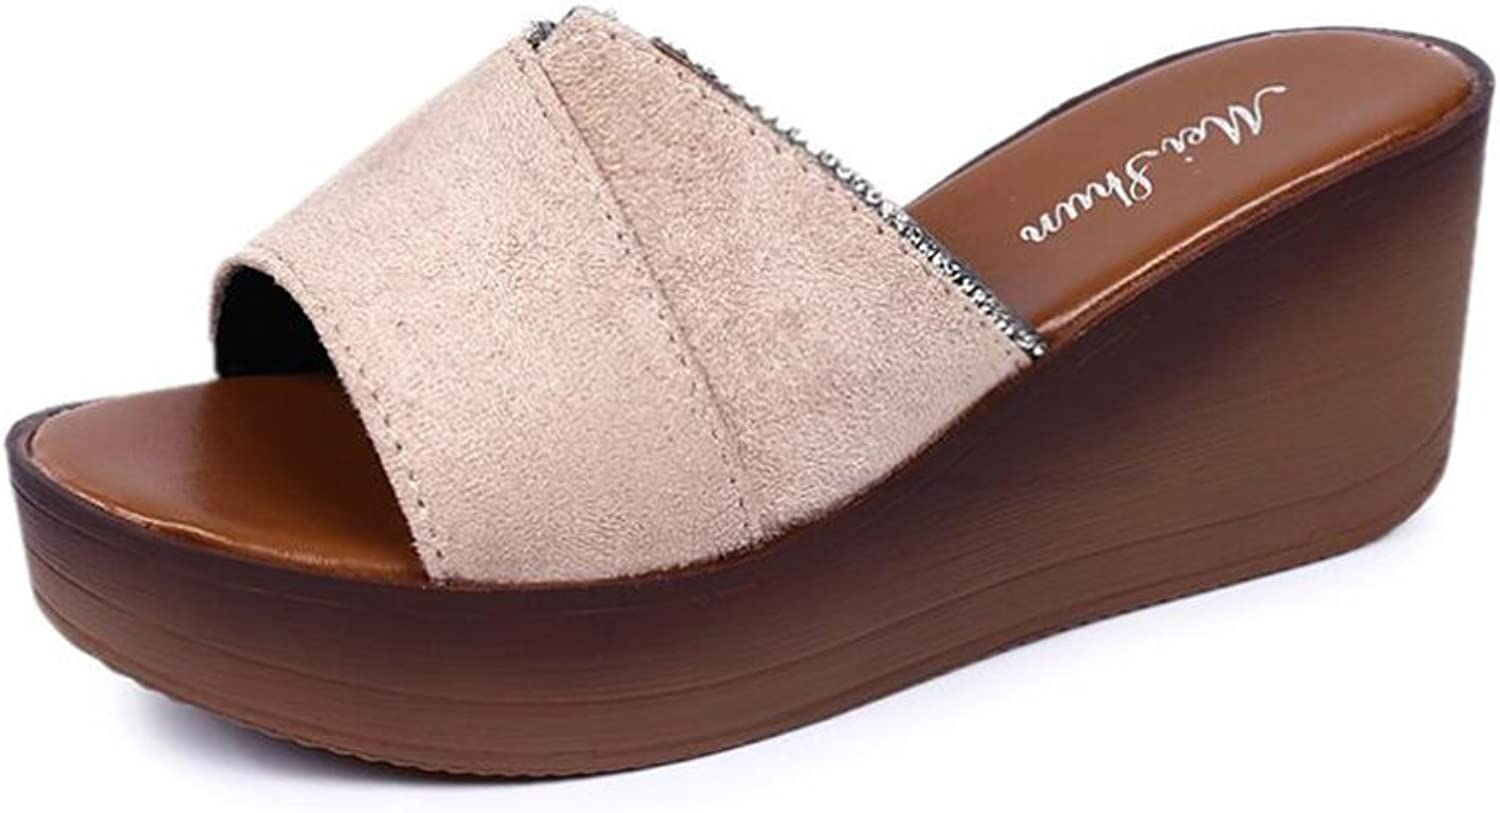 HUAN Woherrar skor Frosted Springaa  Winter ljus Soles Loafers Loafers Loafers & Slippers% Flip gul, svart, Apricot  ny notering